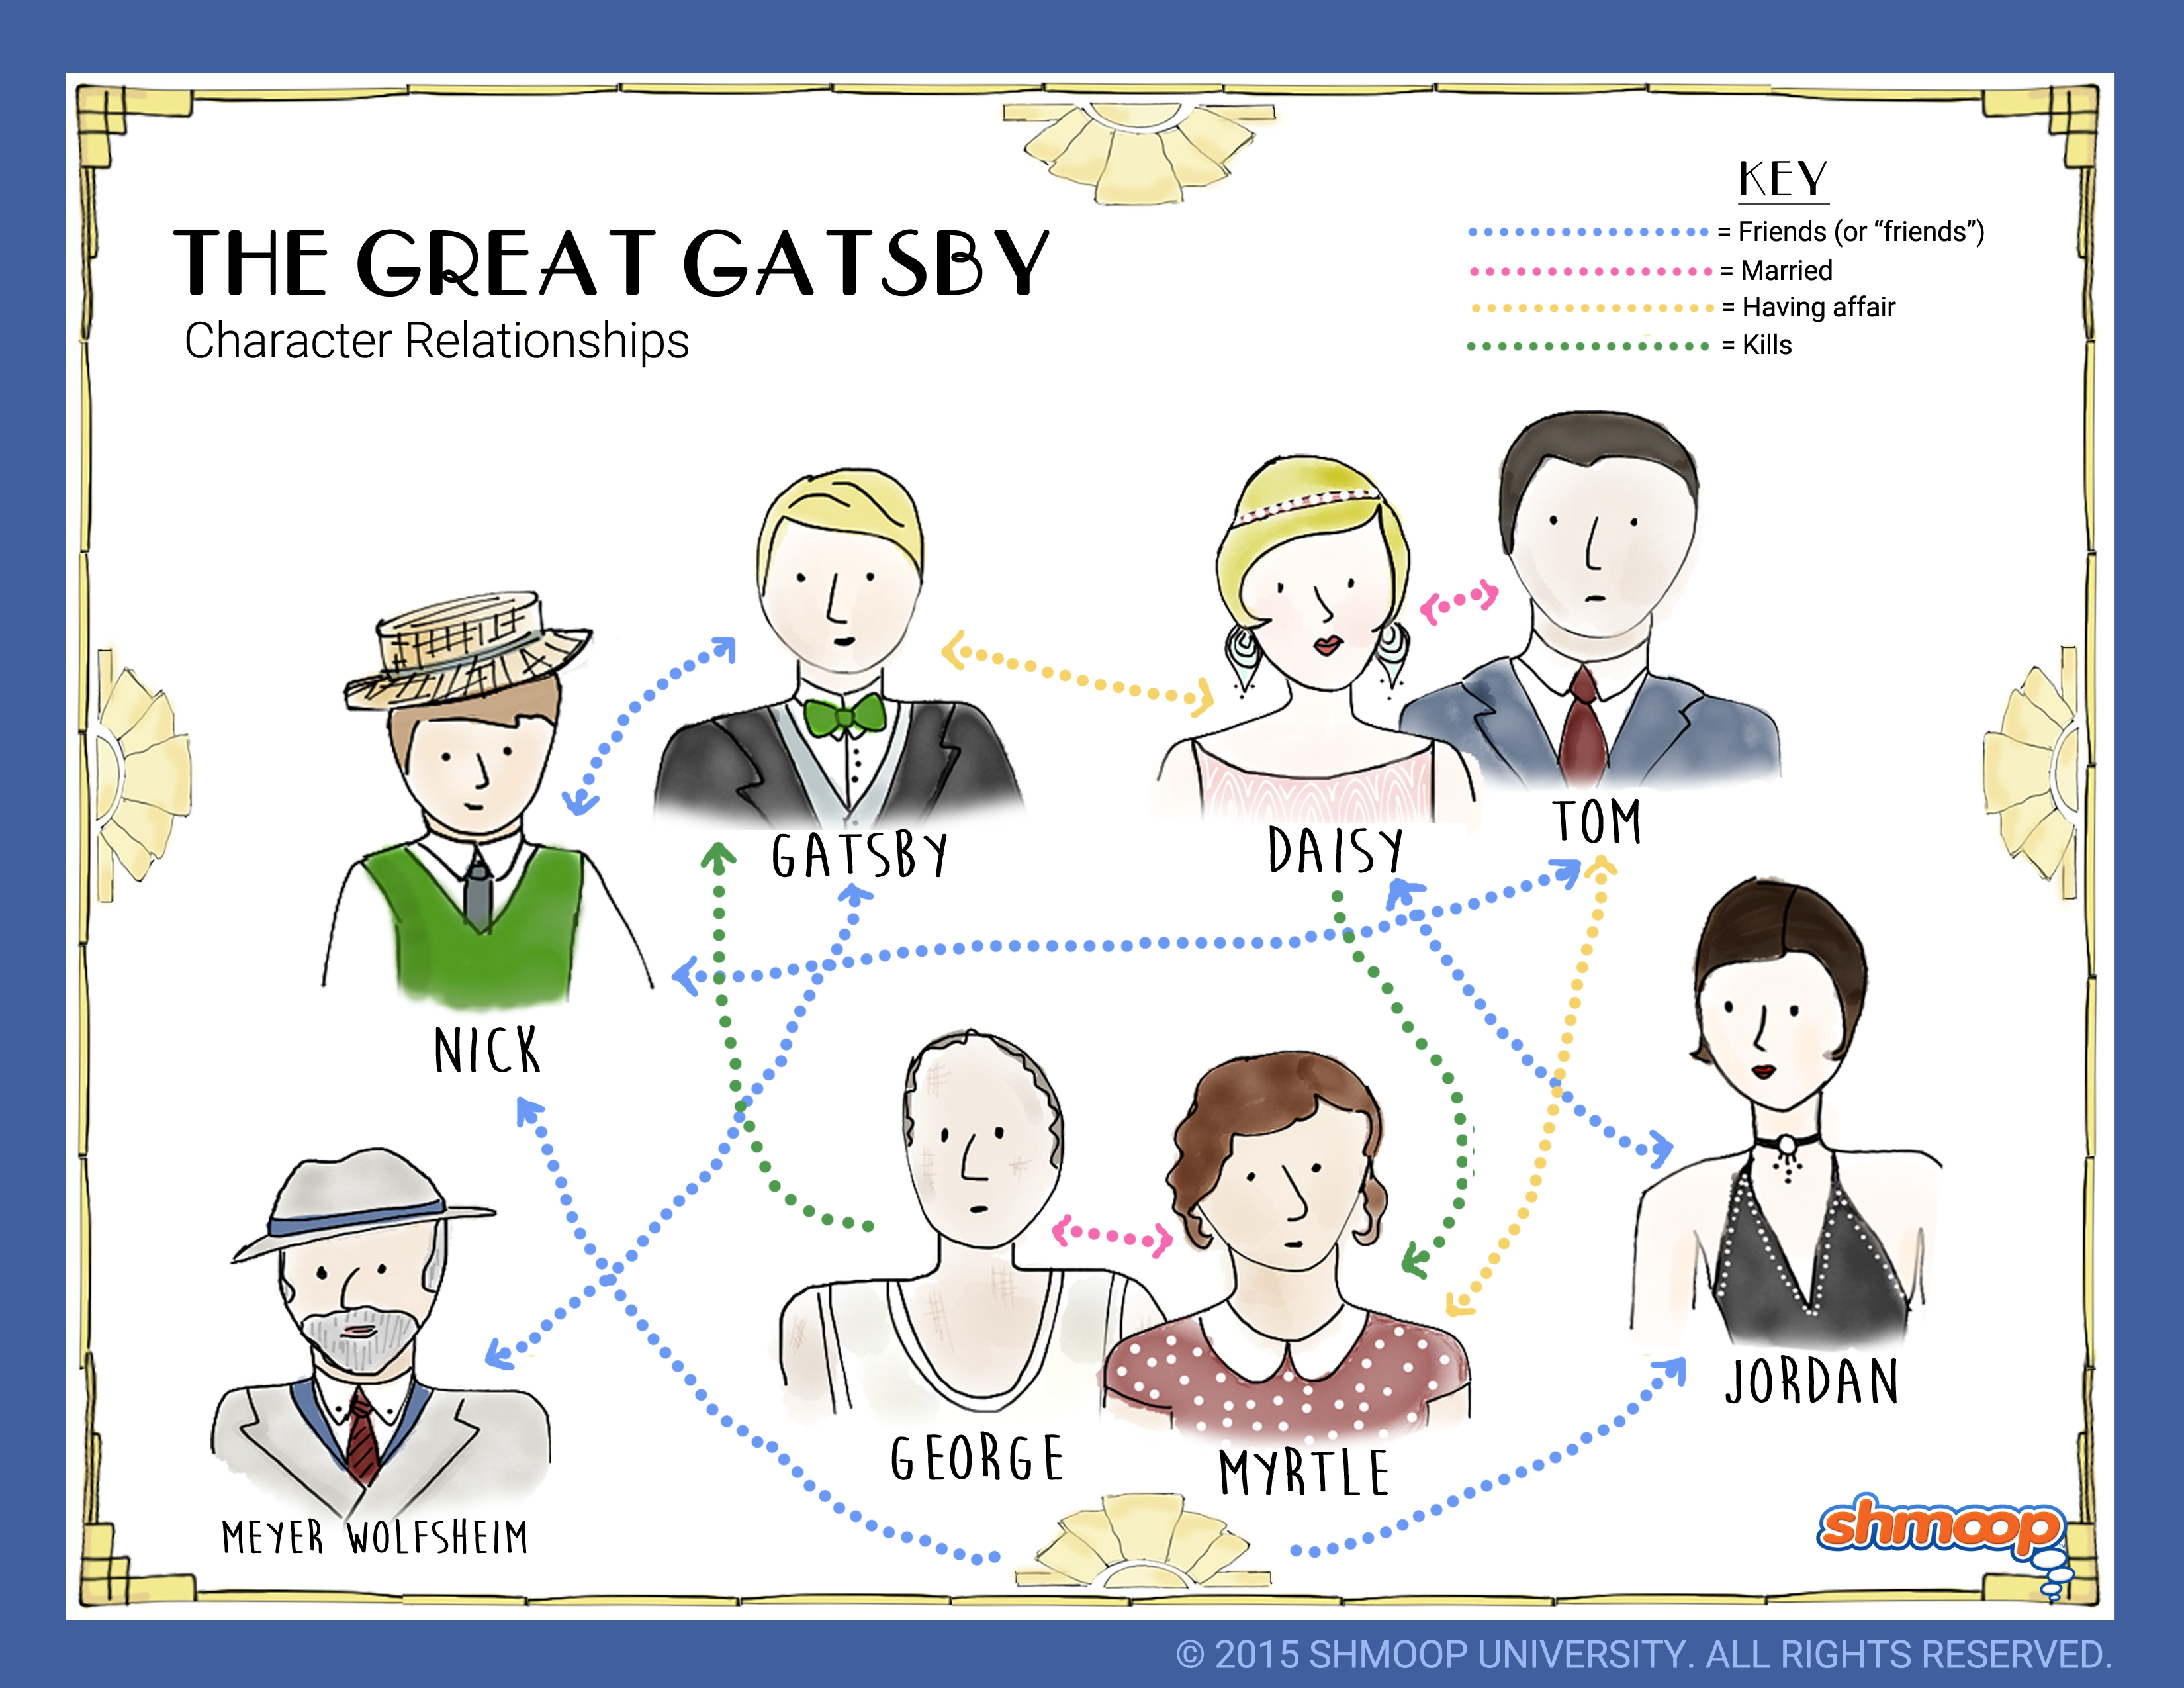 The Great Gatsby - Relationship Map | The great gatsby, The great gatsby  characters, Gatsby